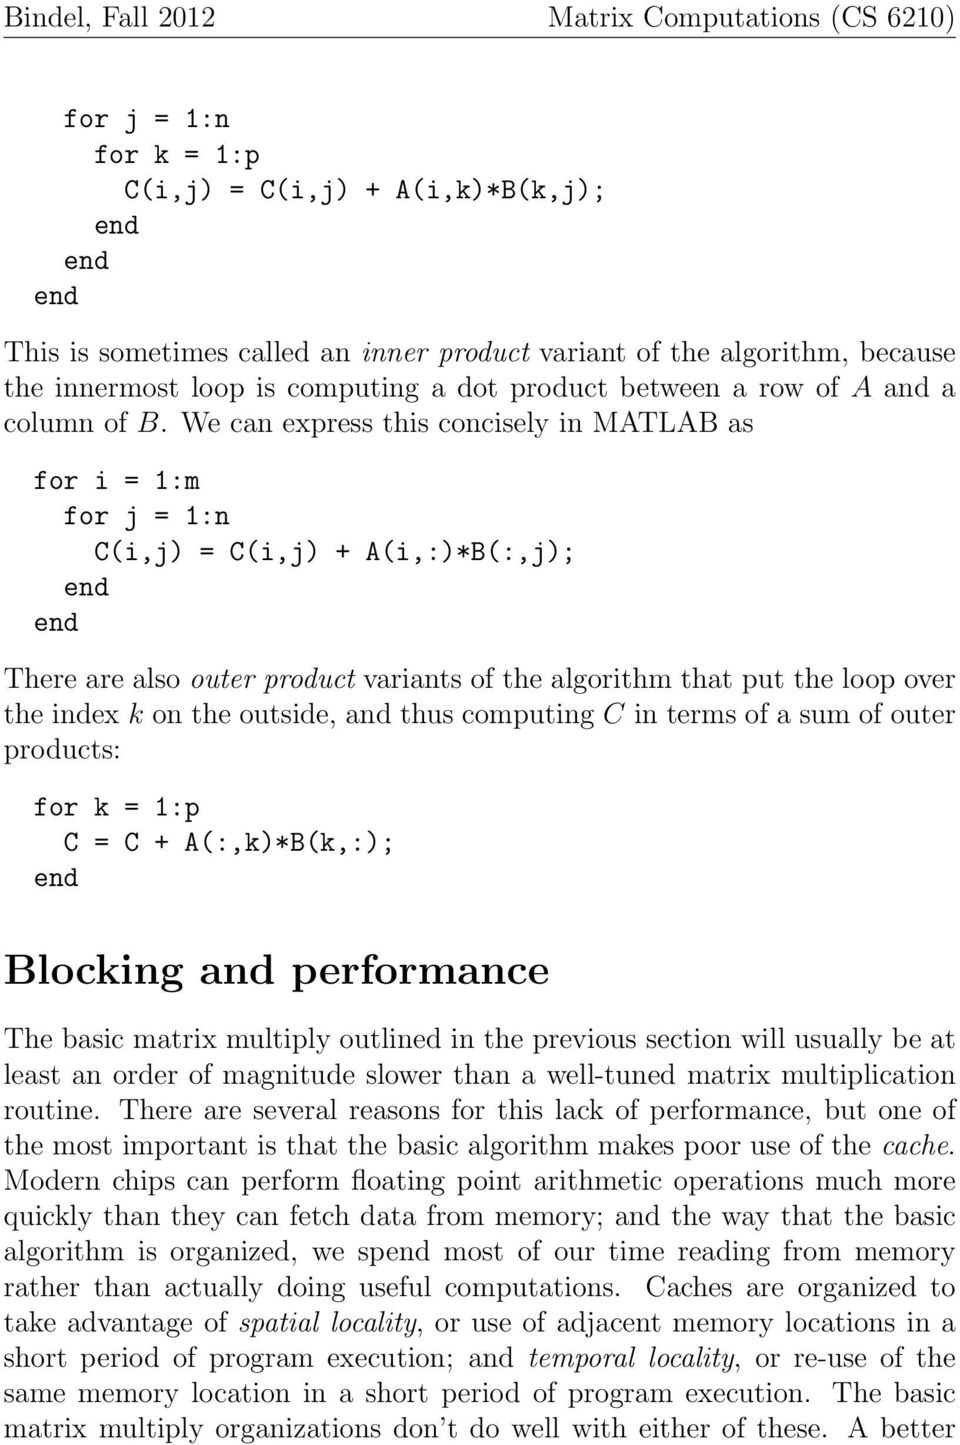 computing C in terms of a sum of outer products: for k = 1:p C = C + A(:,k)*B(k,:); Blocking and performance The basic matrix multiply outlined in the previous section will usually be at least an